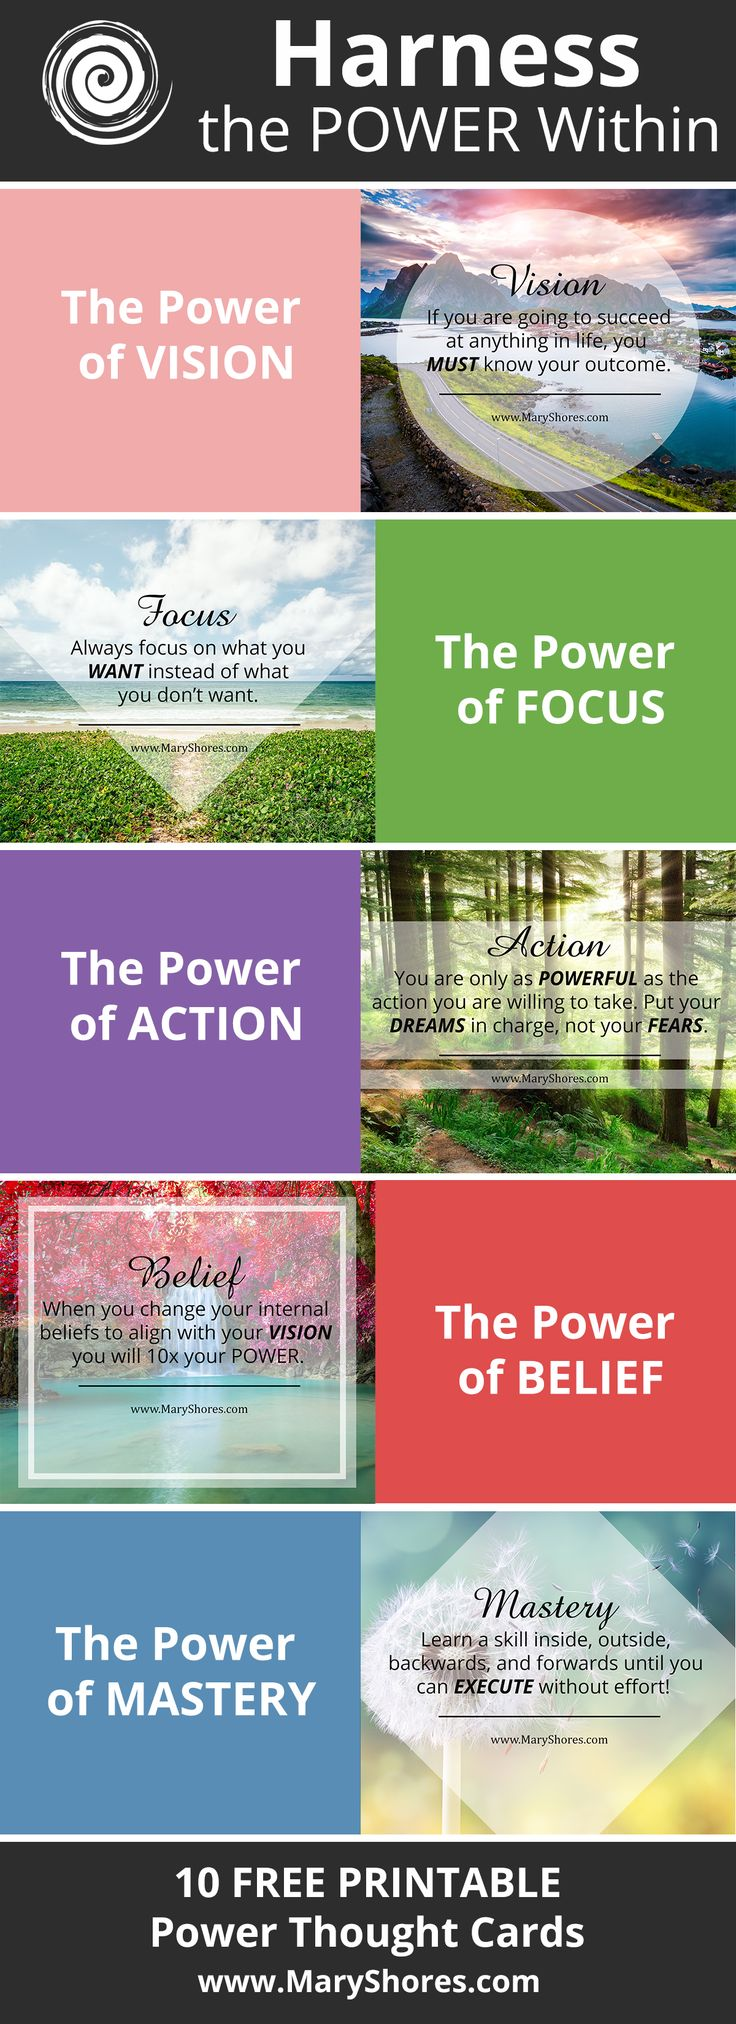 [FREE PRINTABLE] Harness the Power Within - Power Thought Cards - Sign Up to Download - Mary Shores - Hay House Author